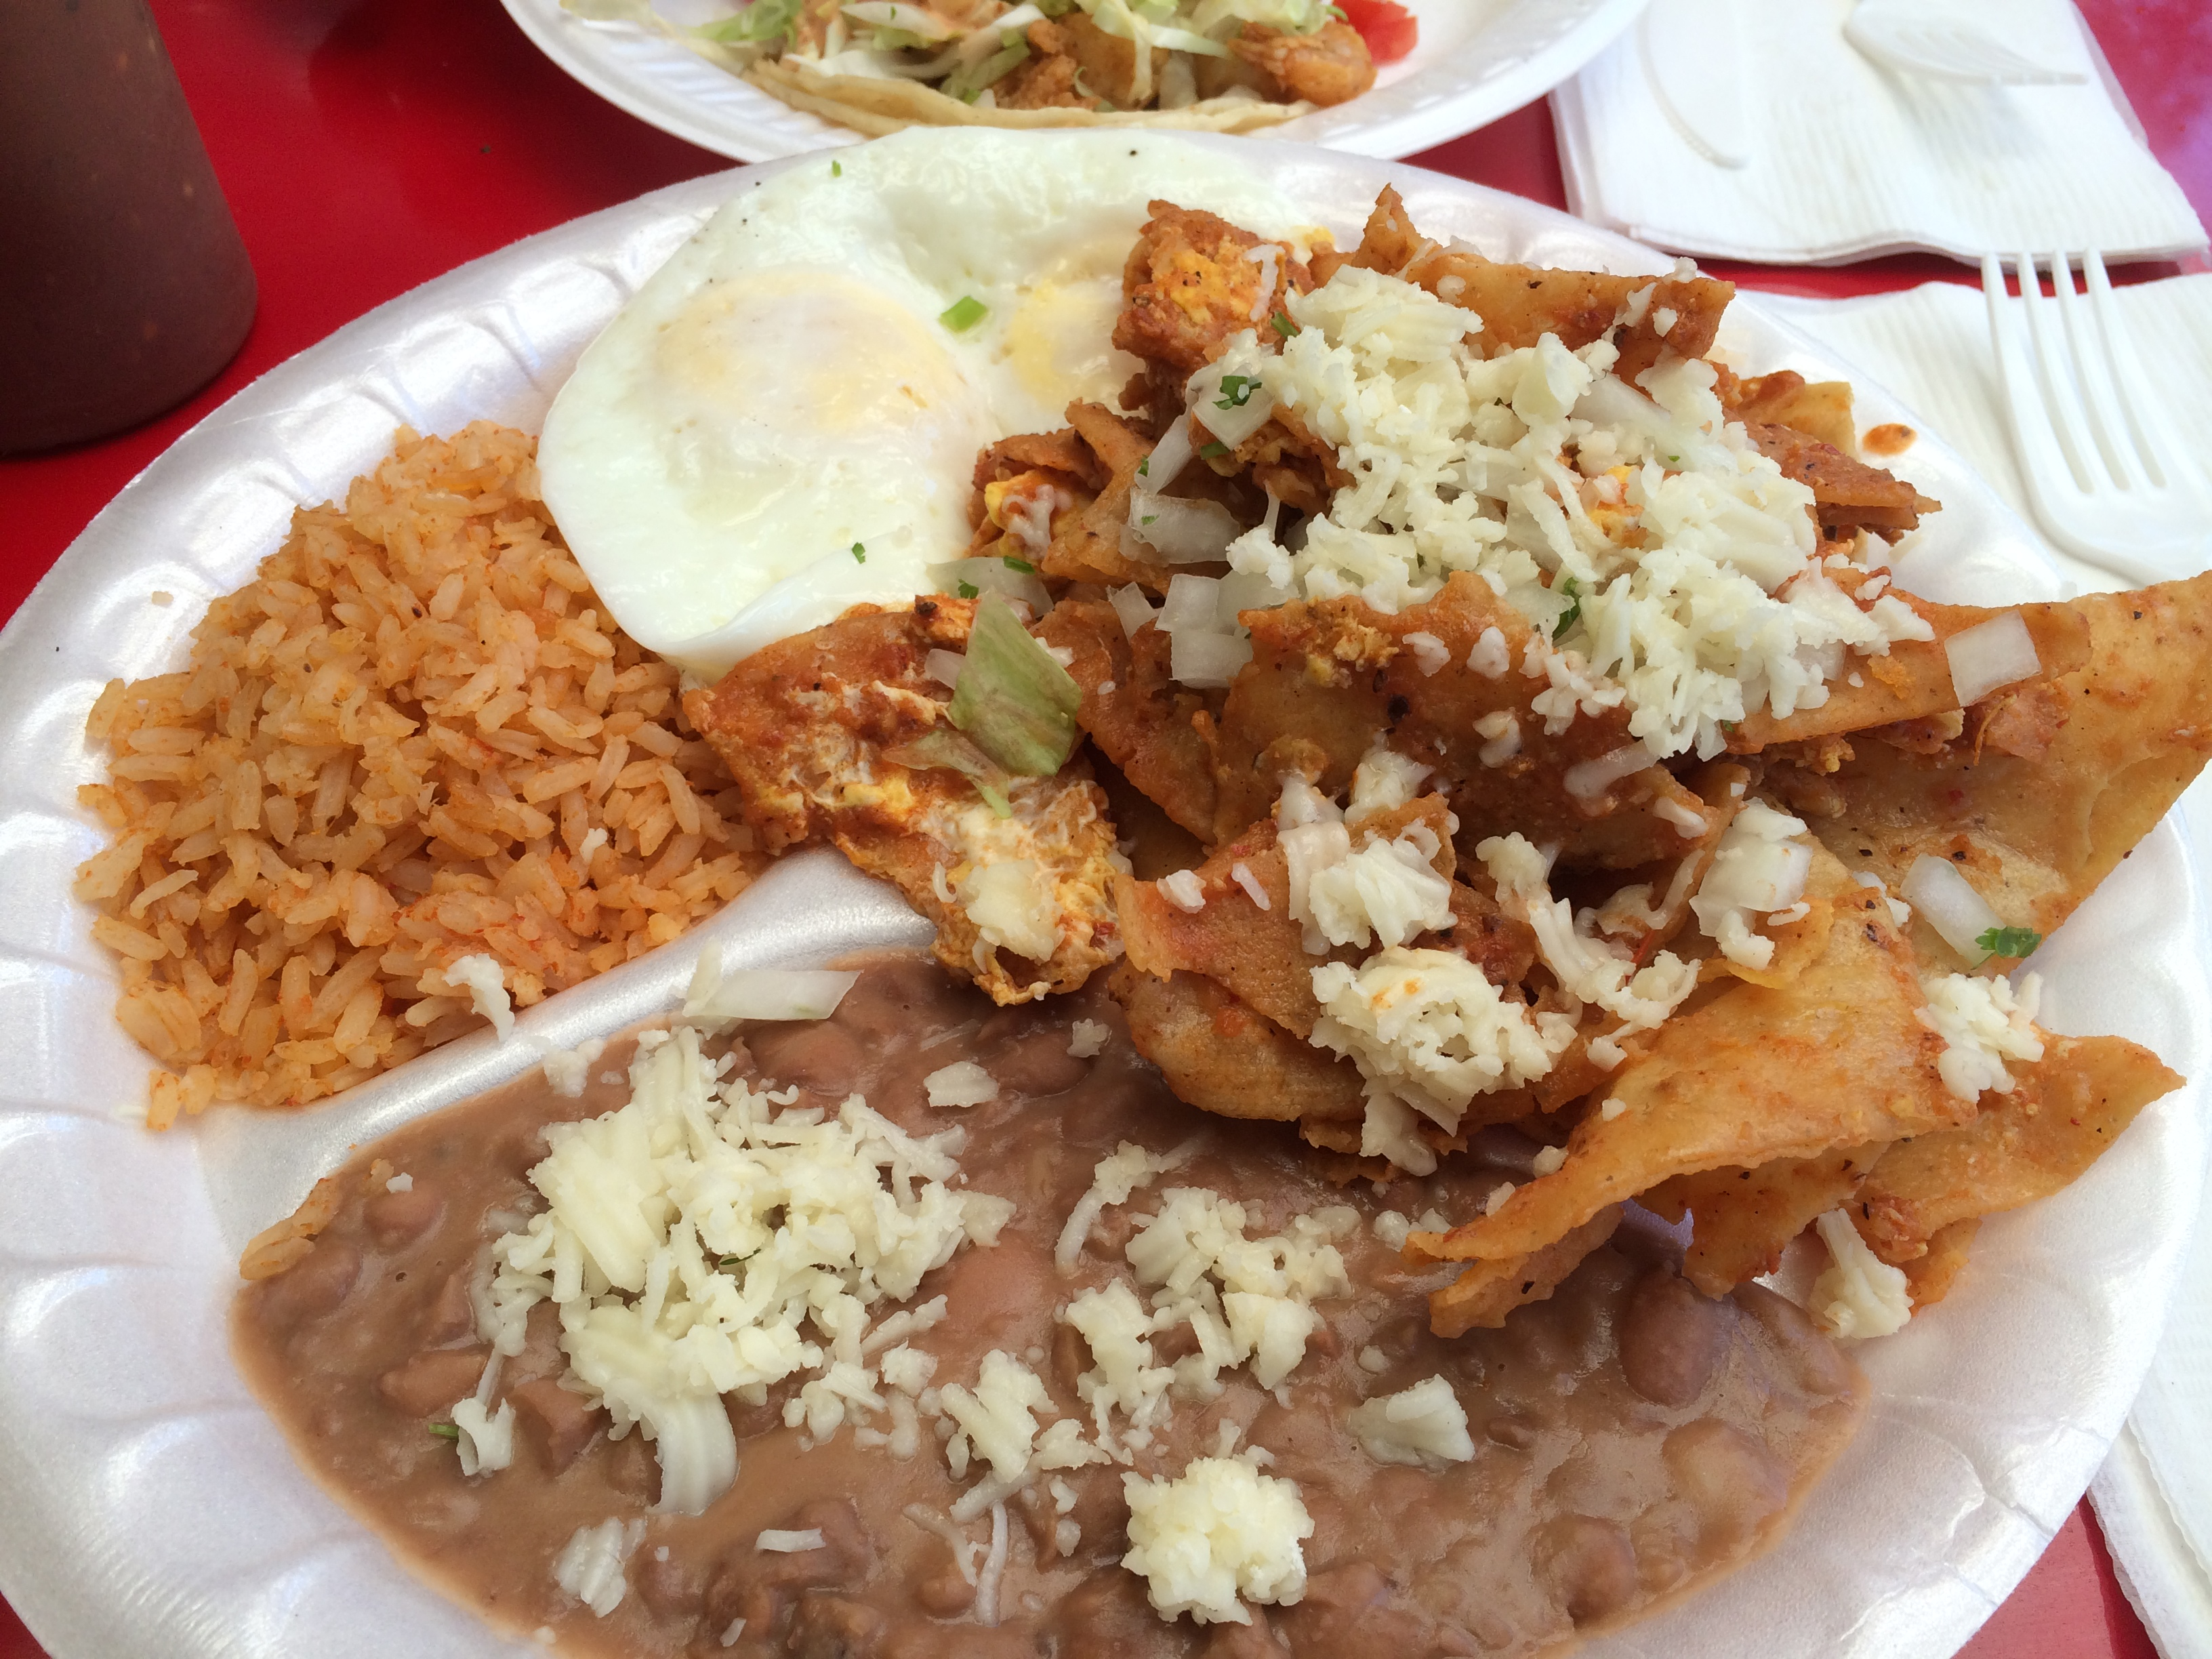 Chilaquiles with eggs from Tacos Delta on W. Sunset Blvd.